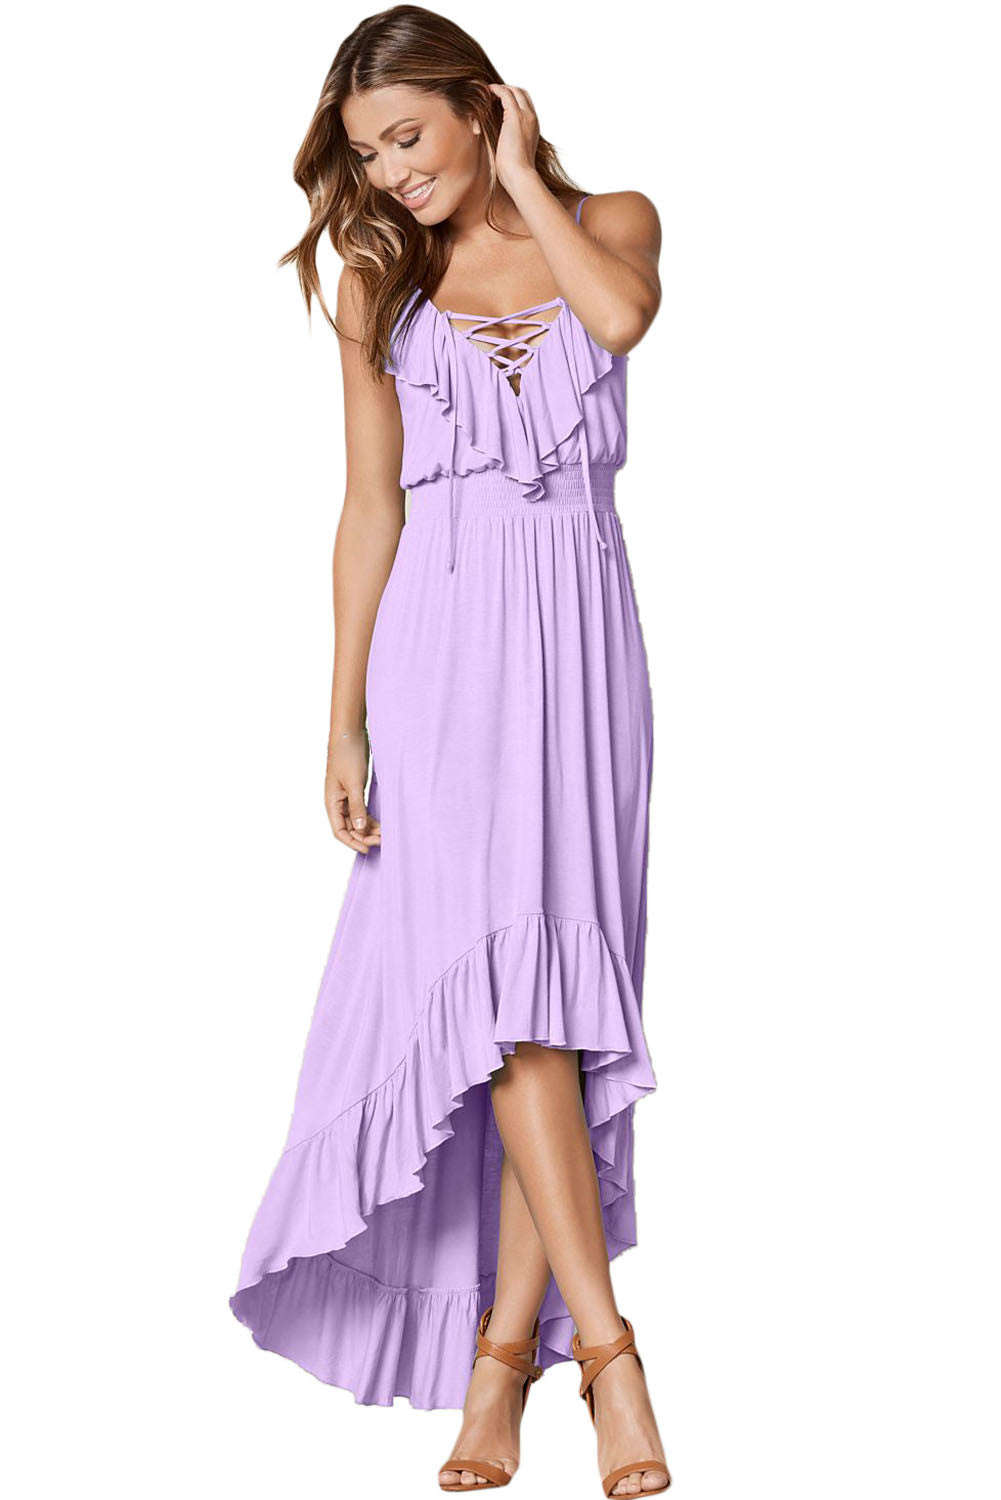 Her Fashion Lilac Lace Up V Neck Ruffle Trim Timeless Maxi Dress